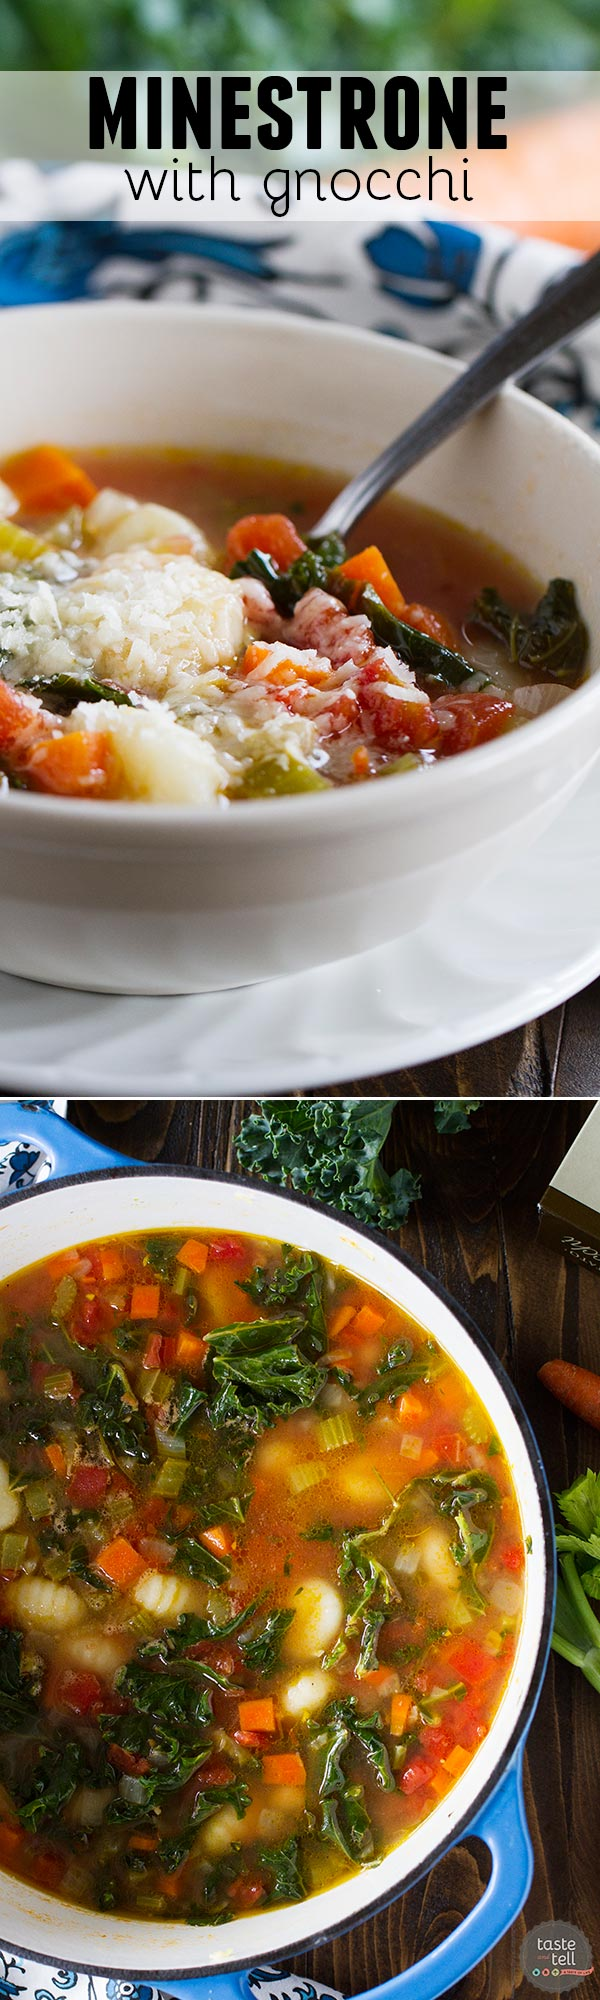 Food Network Minestrone With Gnocchi